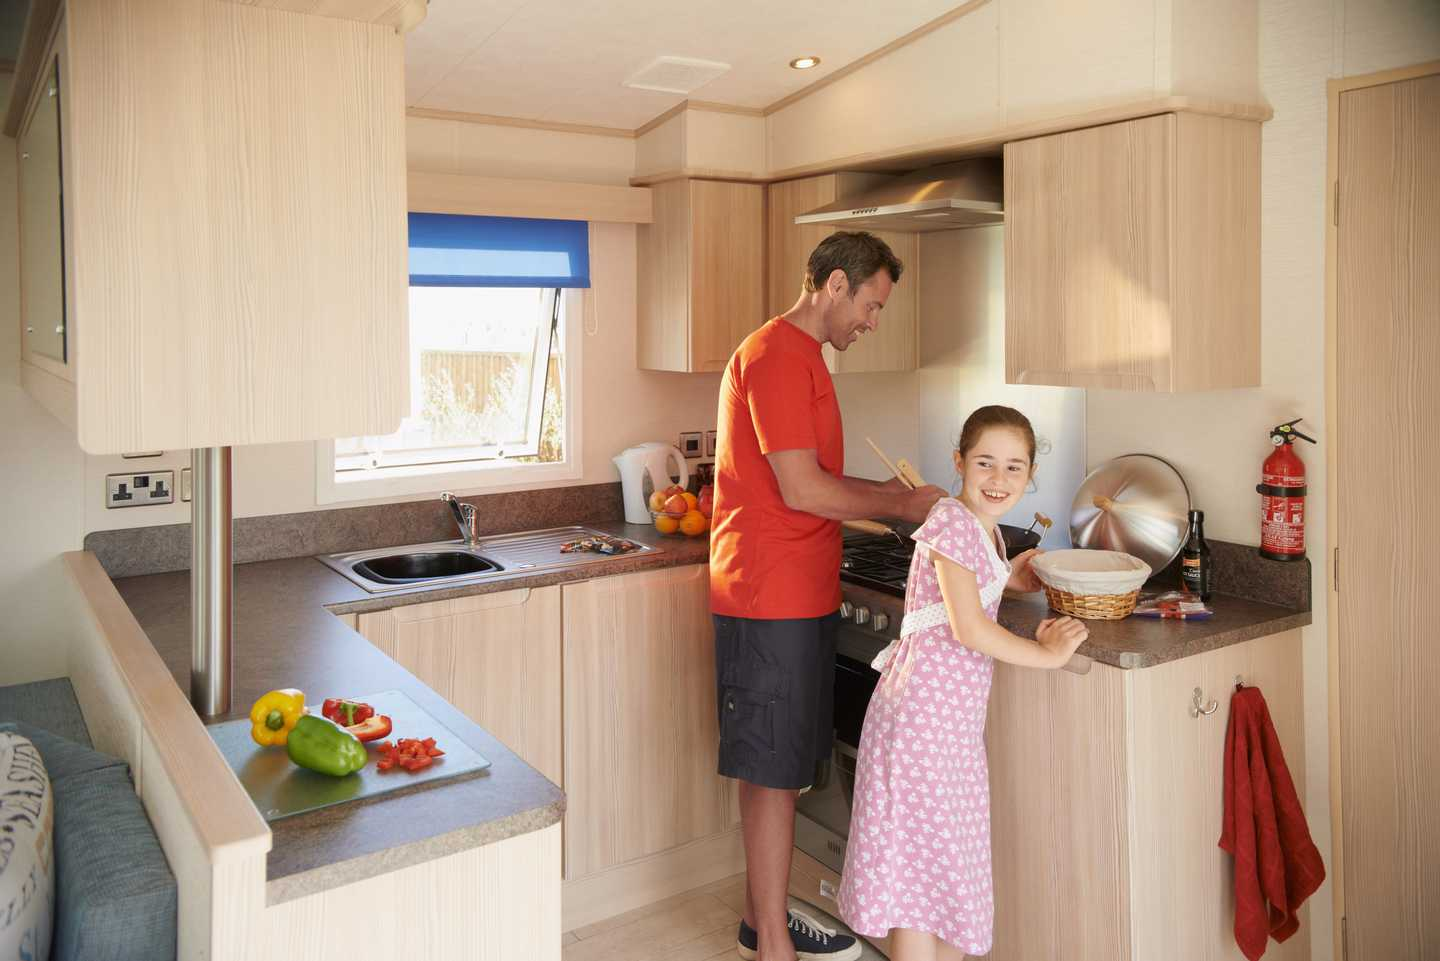 A father and daughter in a Prestige caravan kitchen making dinner